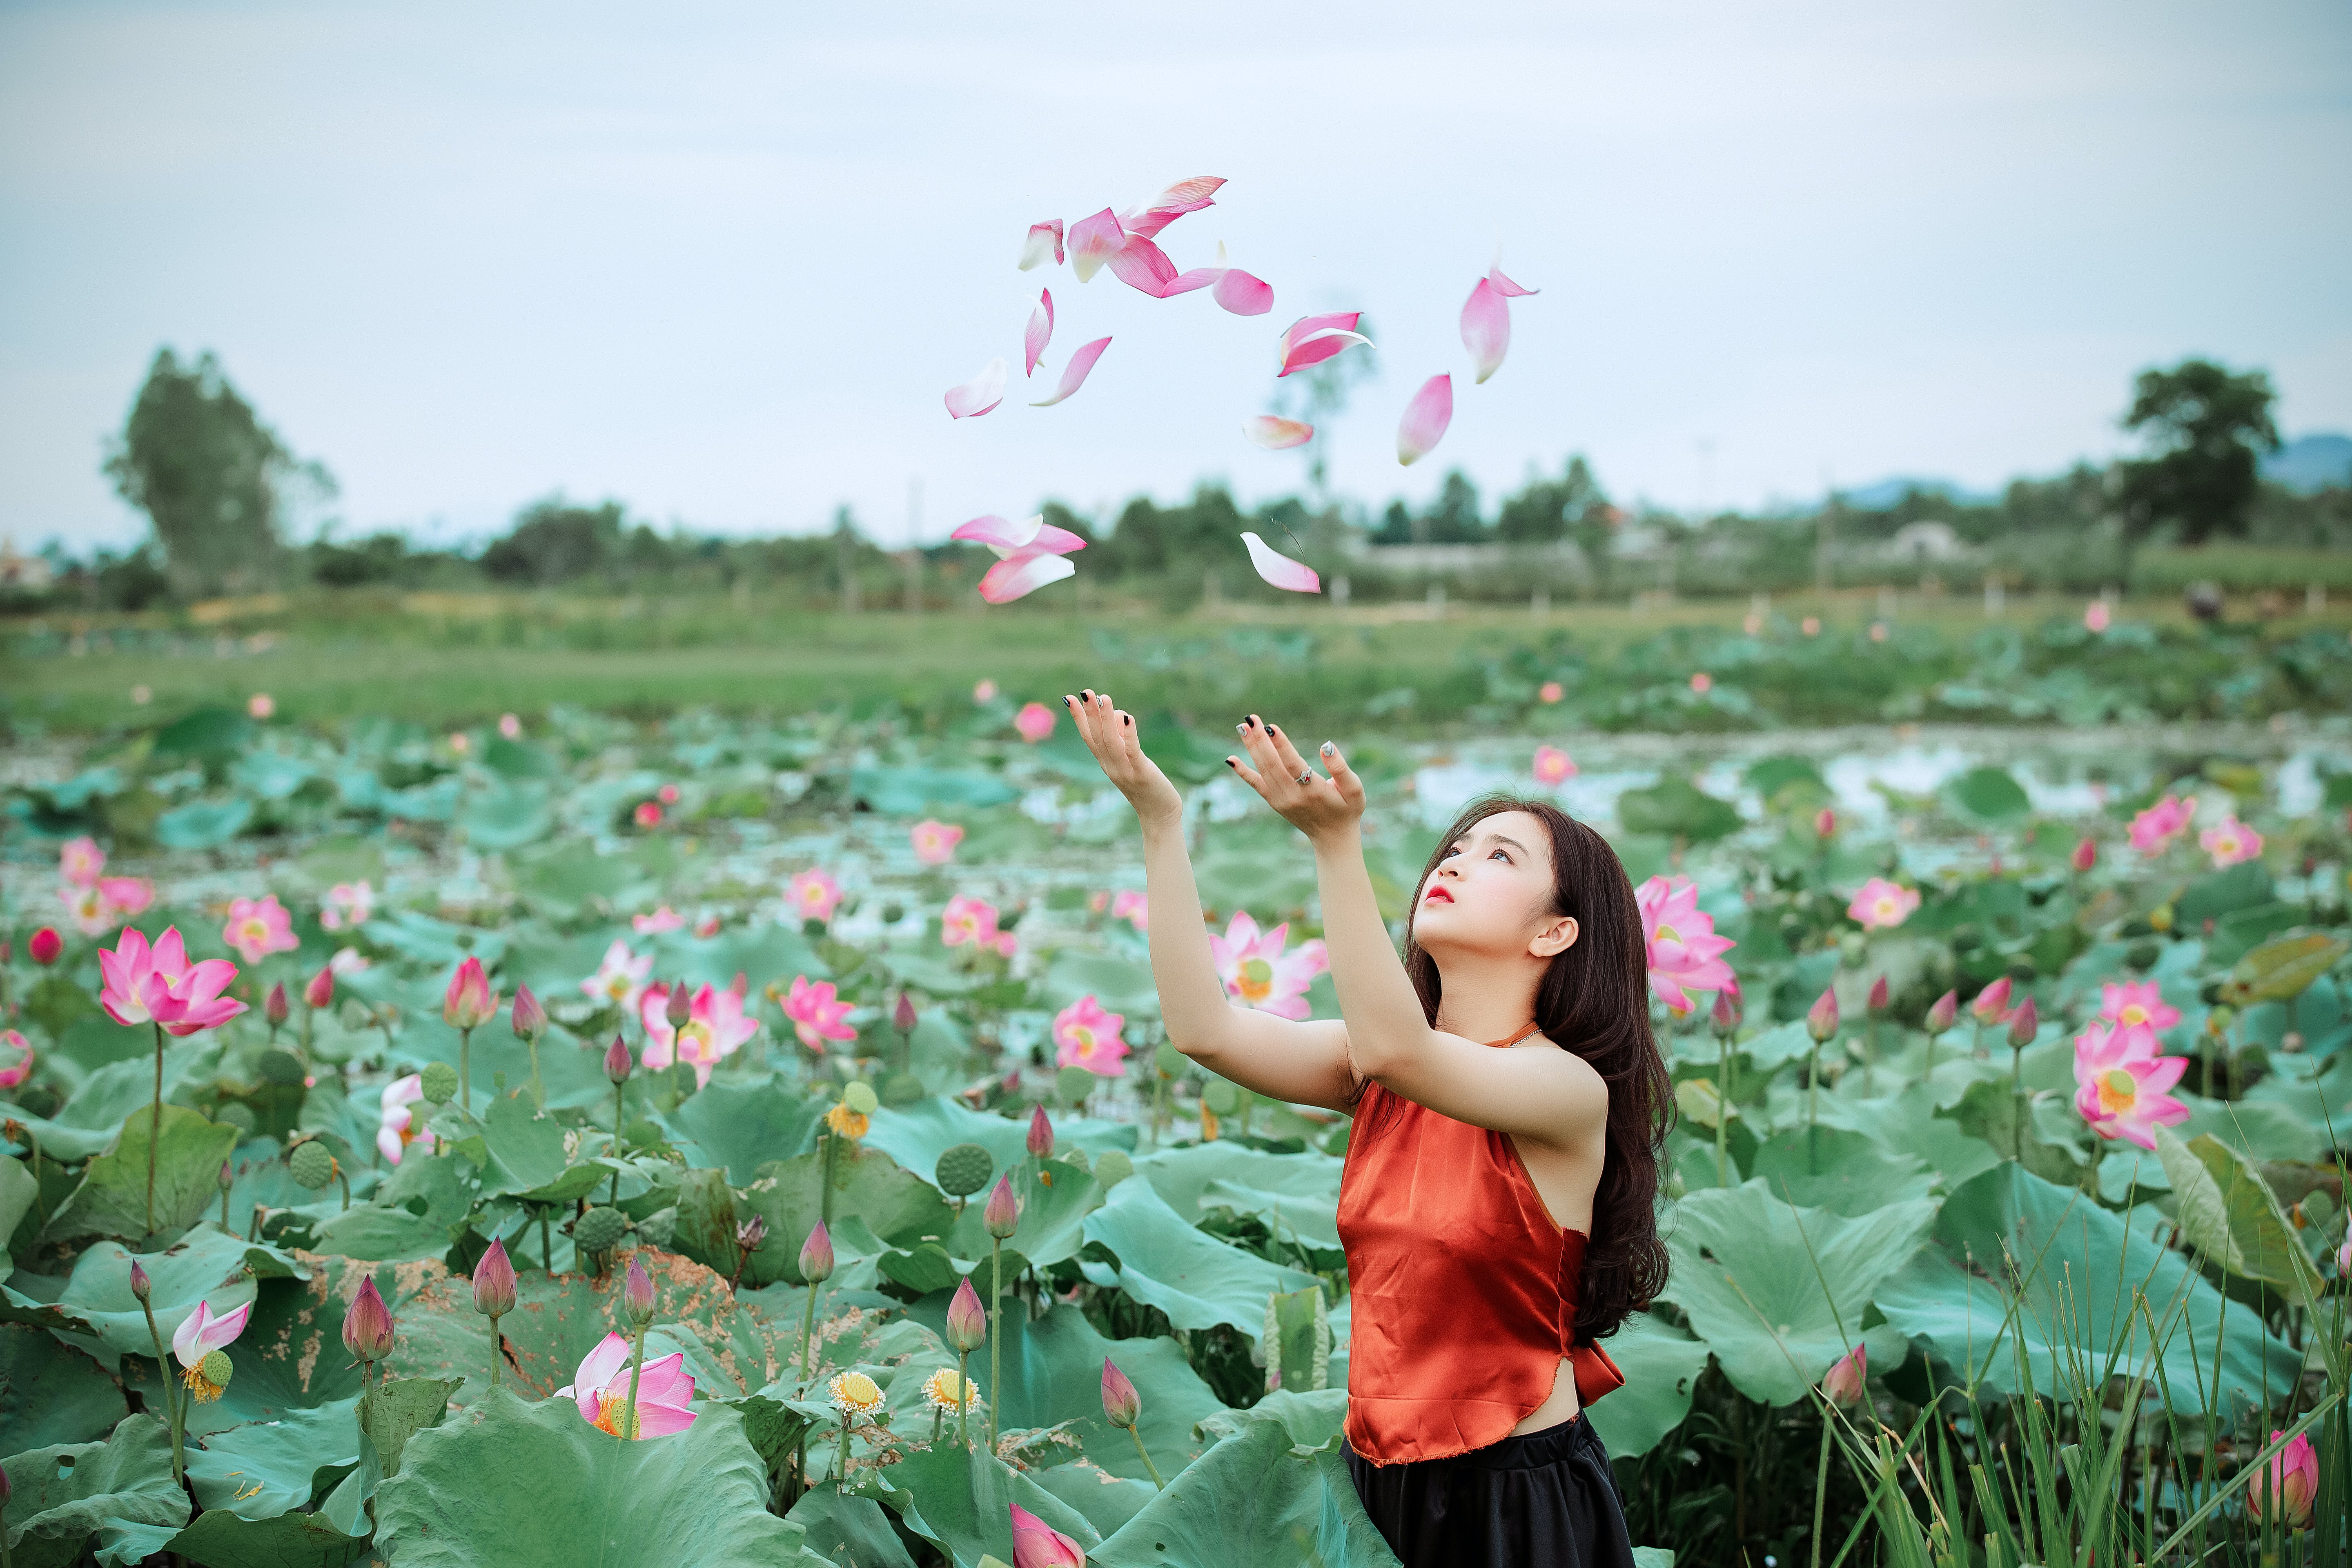 Free stock photo of person, woman, flowers, girl